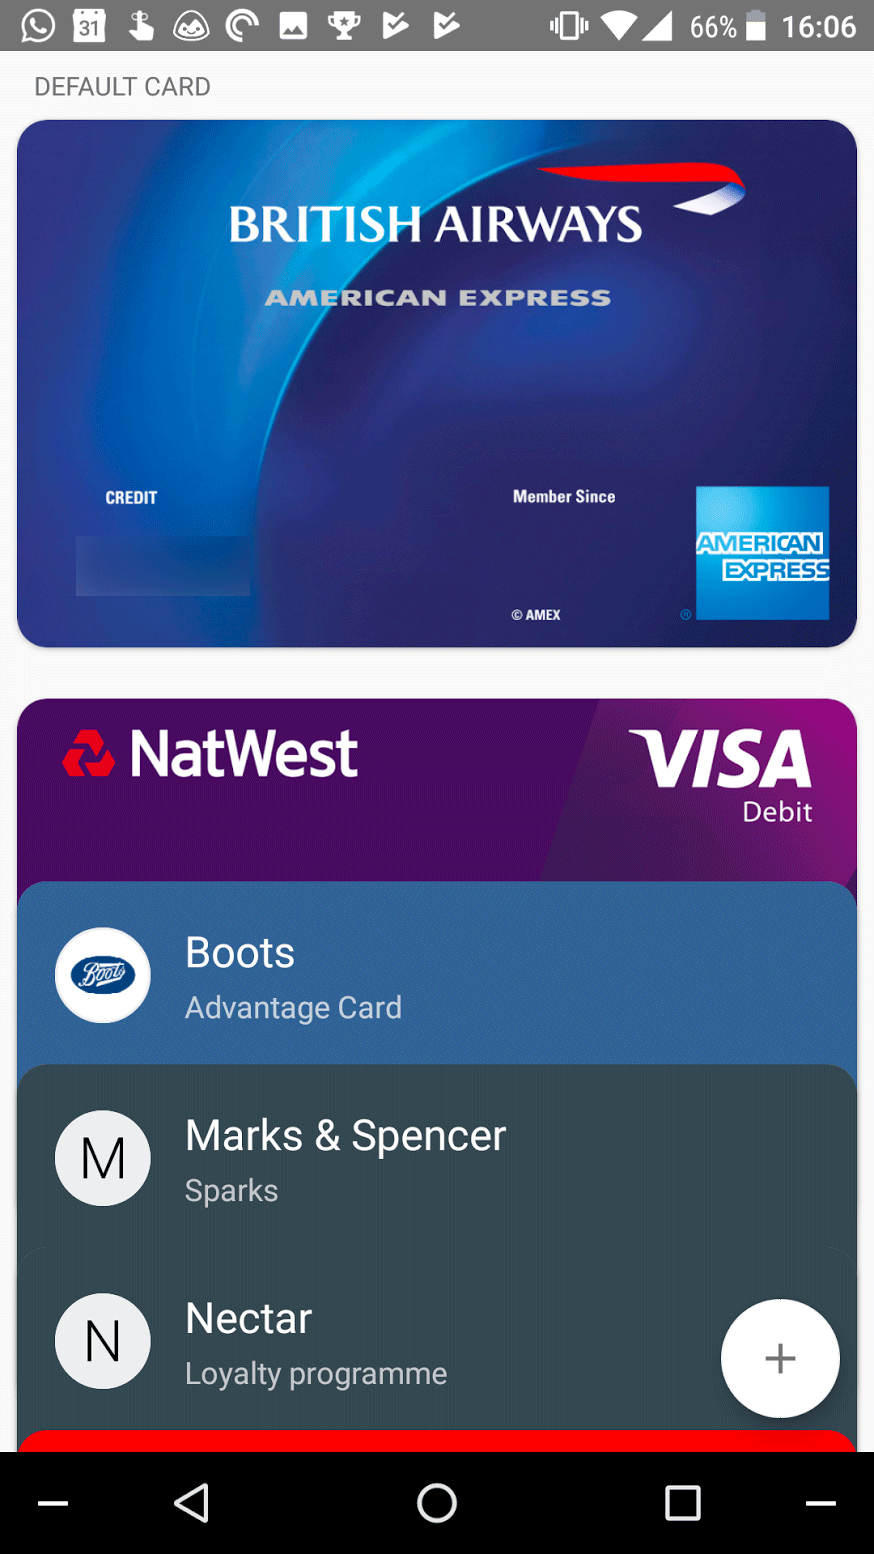 American express adds android pay support in the uk finally my calls have been answered and amex cards now work with googles mobile payments app here in the uk reheart Choice Image